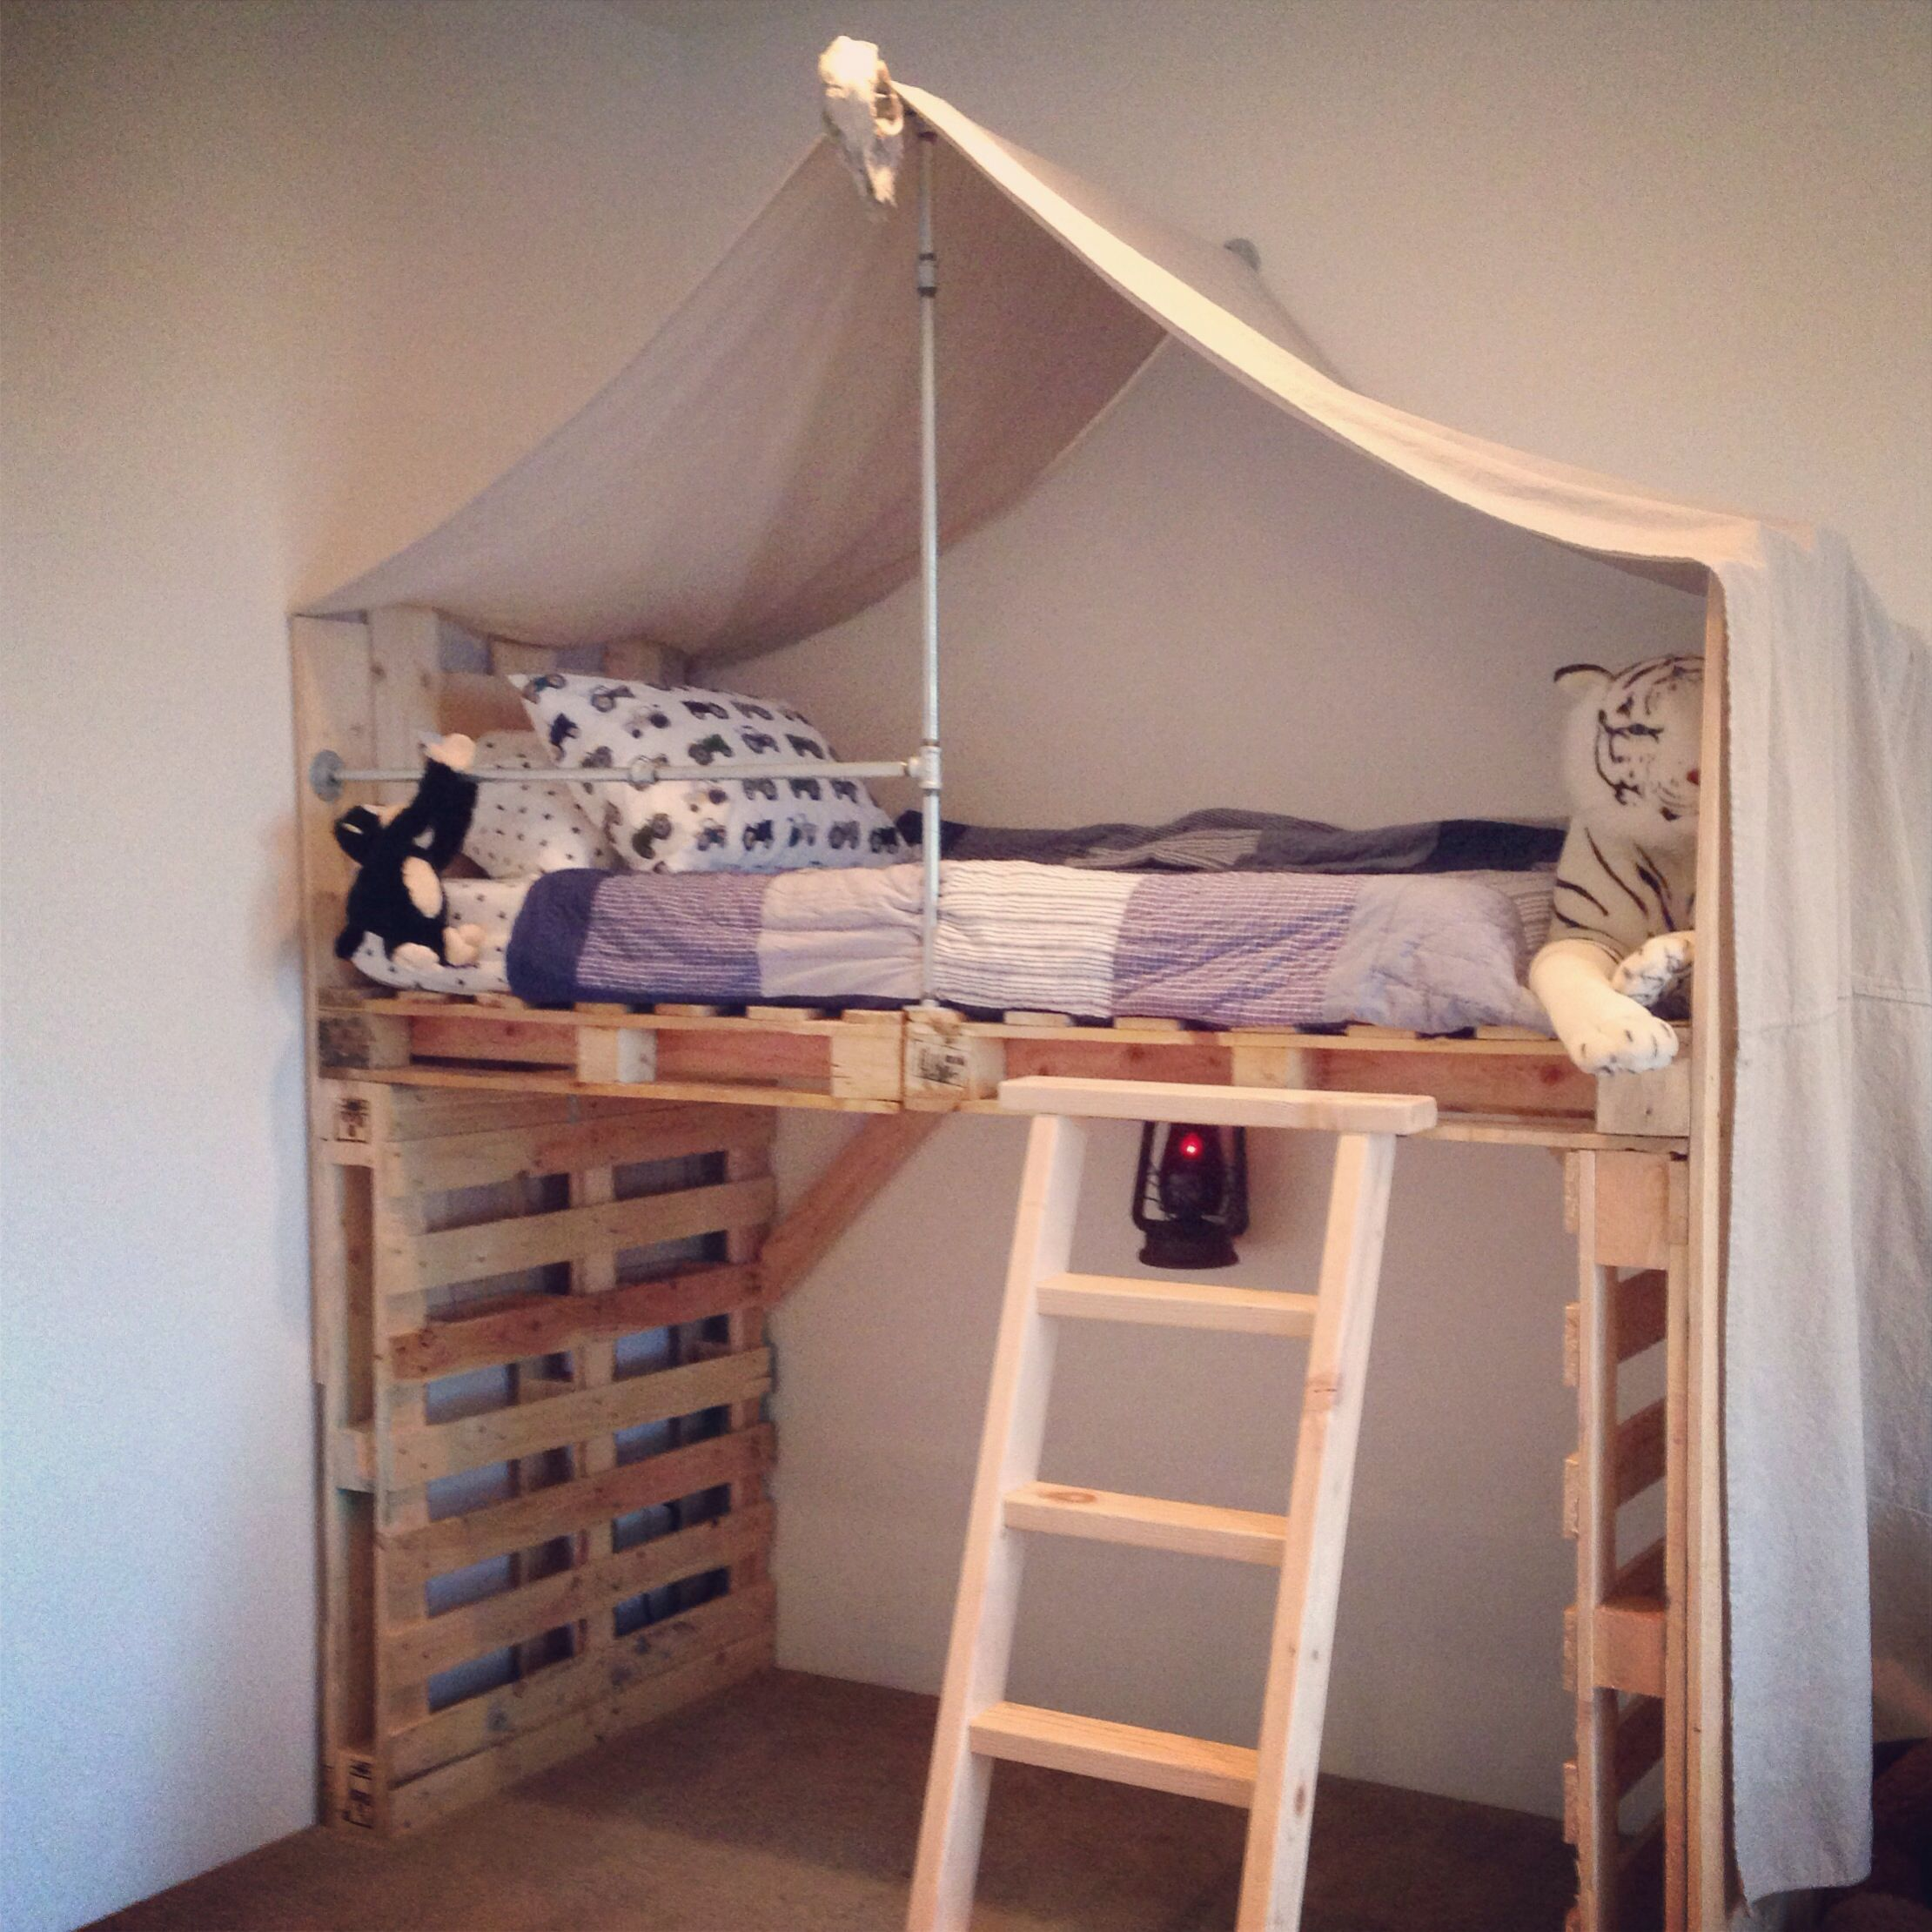 Diy Beds Made Out Of Wooden Pallets Pallet Toddler Bed Diy